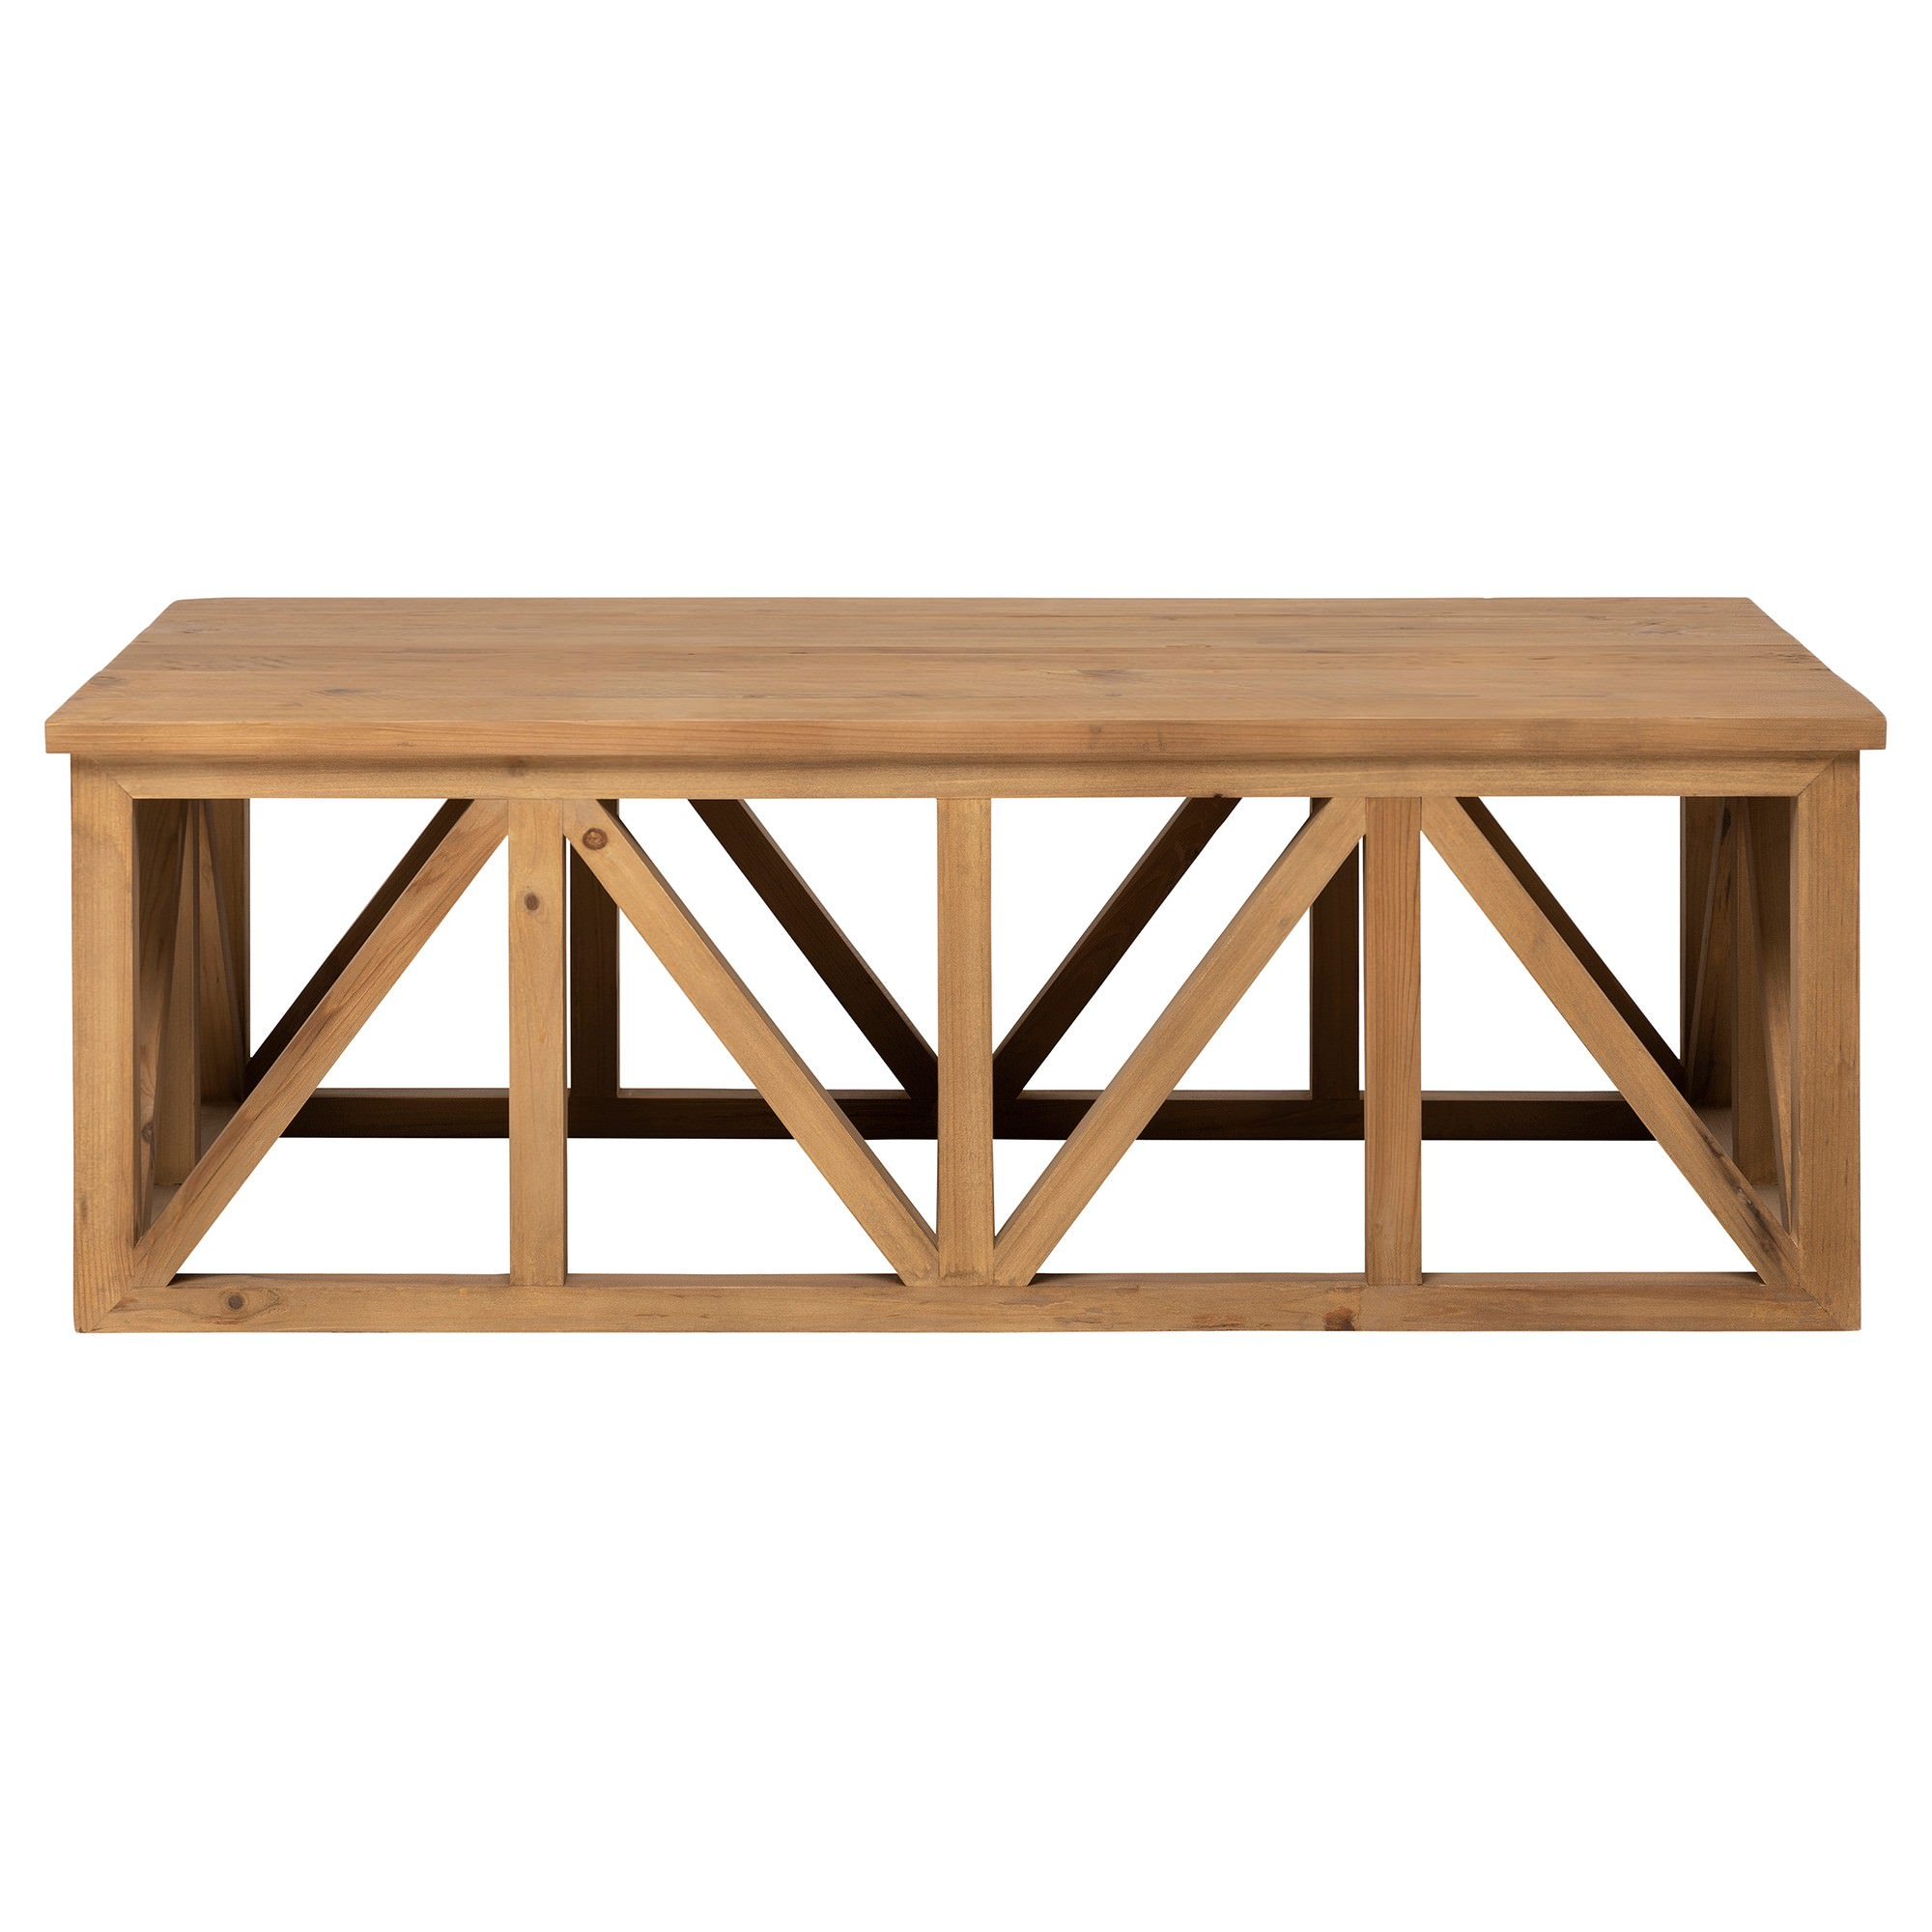 Avignon Teak Timber Coffee Table, 120cm